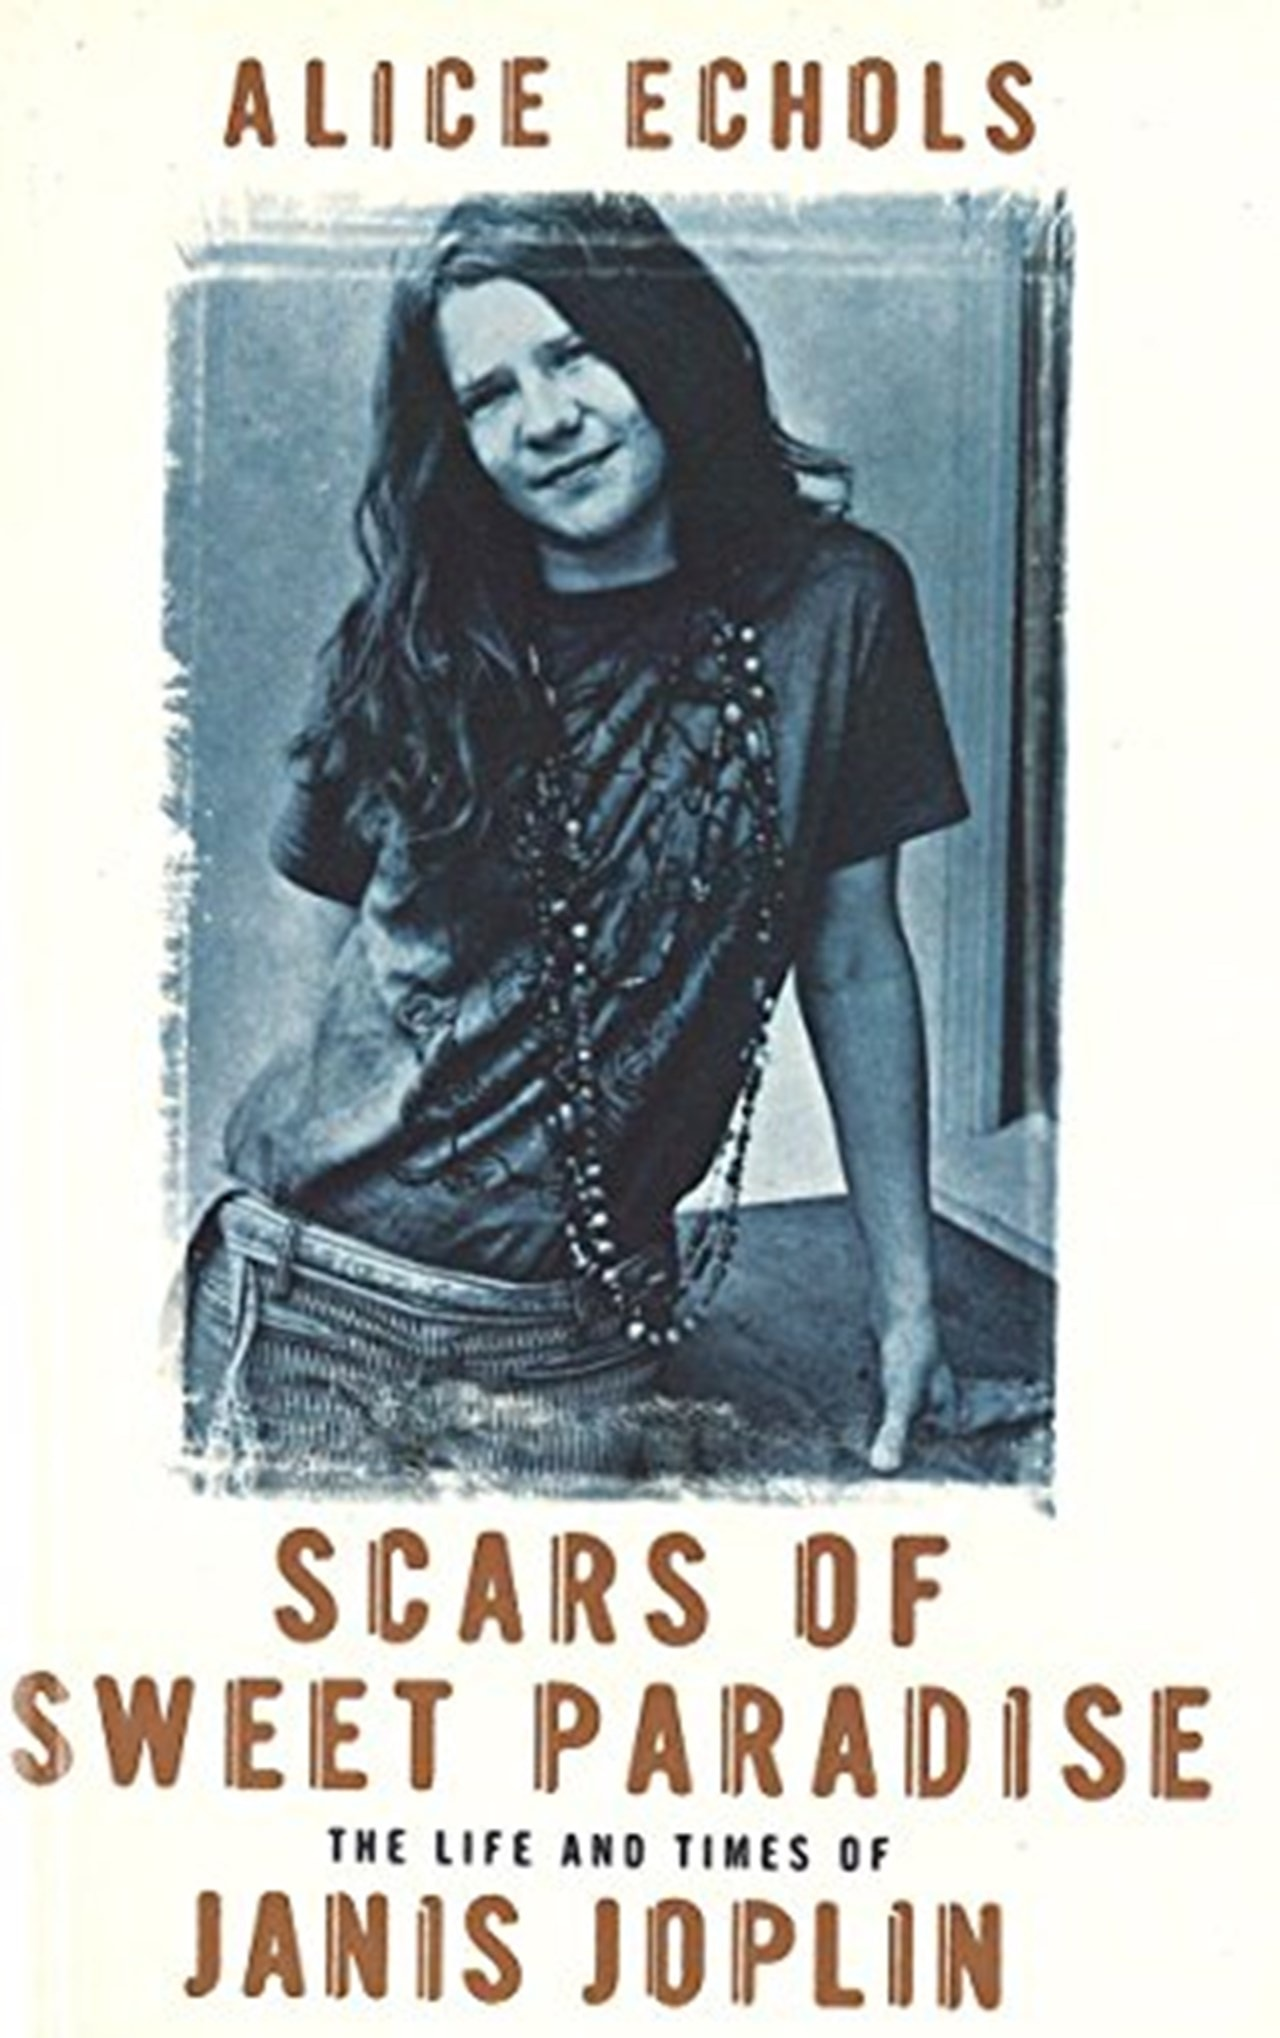 Scars Of Sweet Paradise: The Life and Times of Janis Joplin - 1